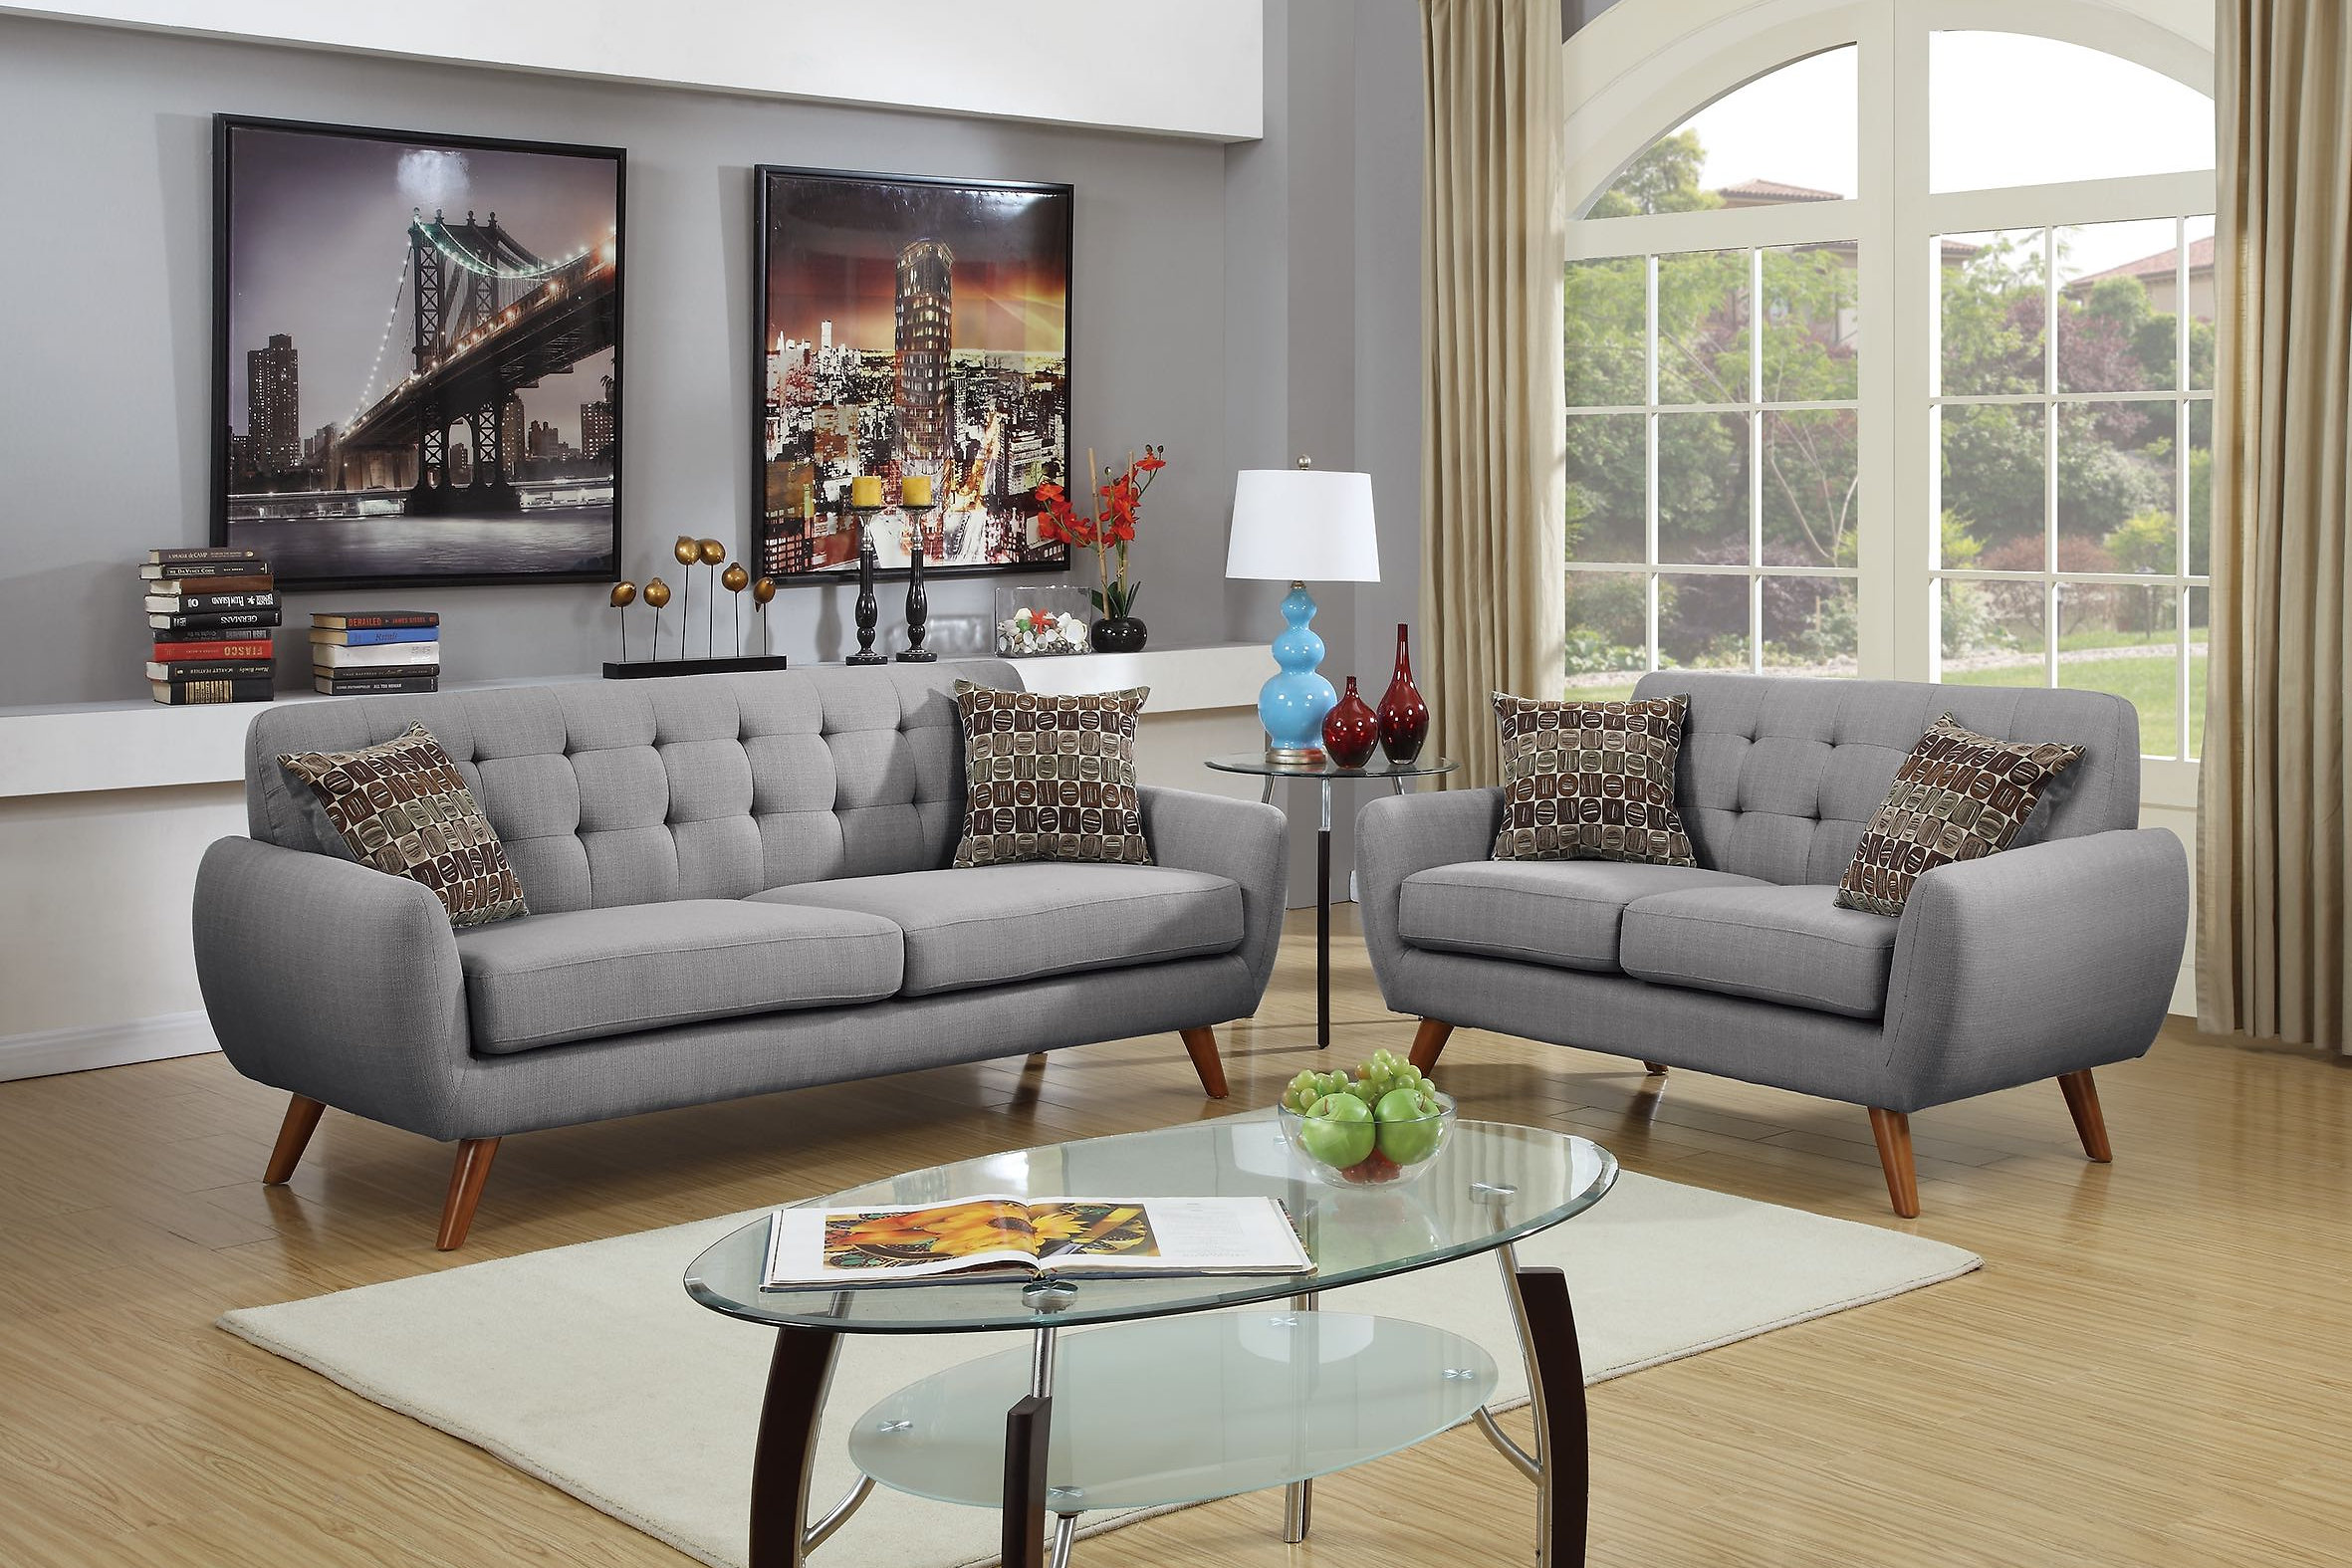 Impress Upon Your Guest With This Magnificently Constructed 2 Piece Sofa Set  That Features A Bold Designed With Accent Tufting On The Low Back Support  And ...